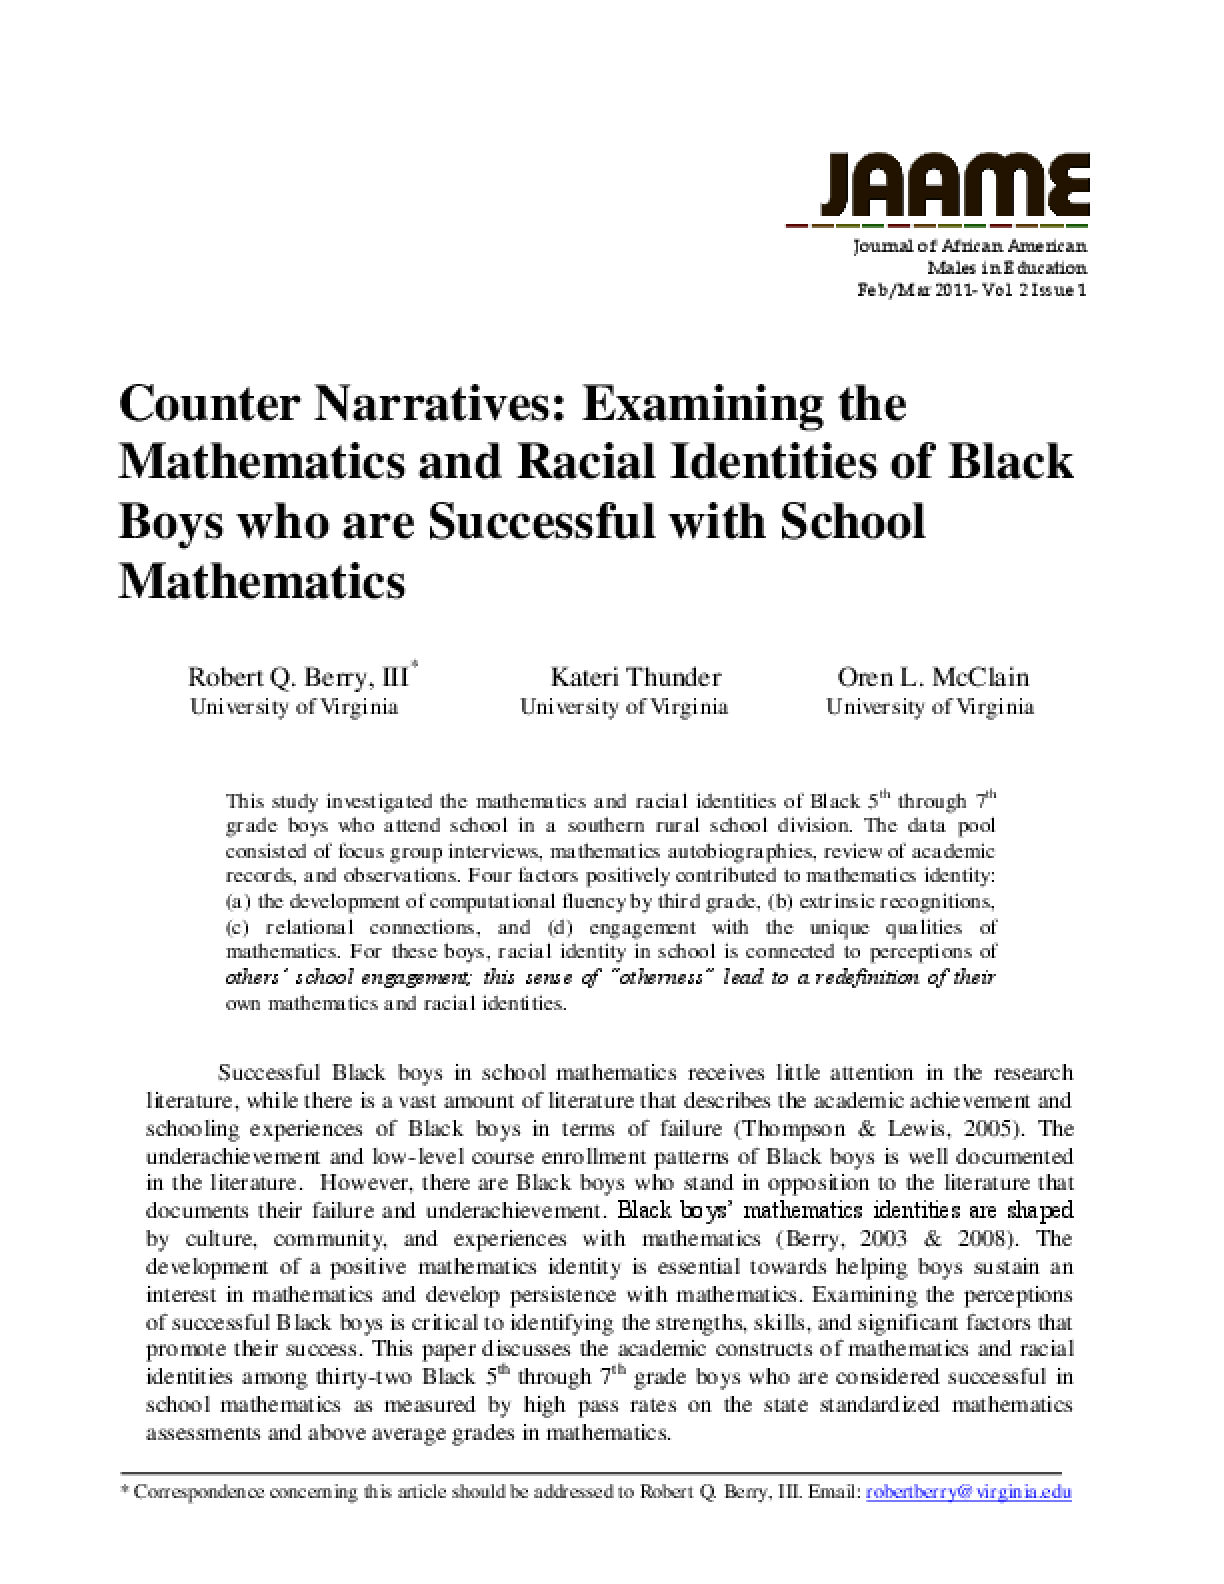 Counter Narratives: Examining the Mathematics and Racial Identities of Black Boys who are Successful with School Mathematics